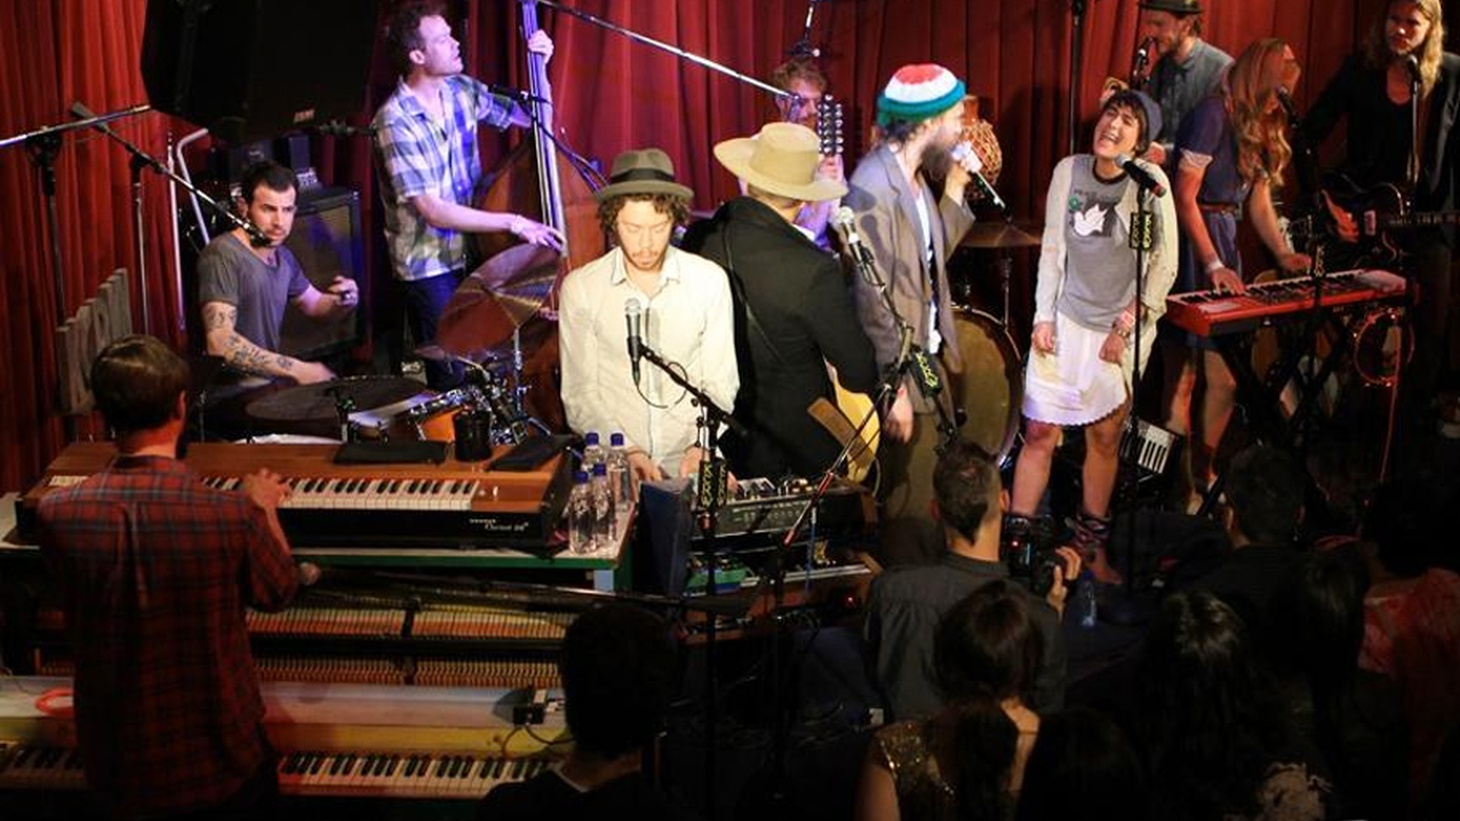 A live session with LA's own Edward Sharpe and the Magnetic Zeros, recorded in front of a live audience at KCRW's Apogee Sessions. Hosted by Liza Richardson.